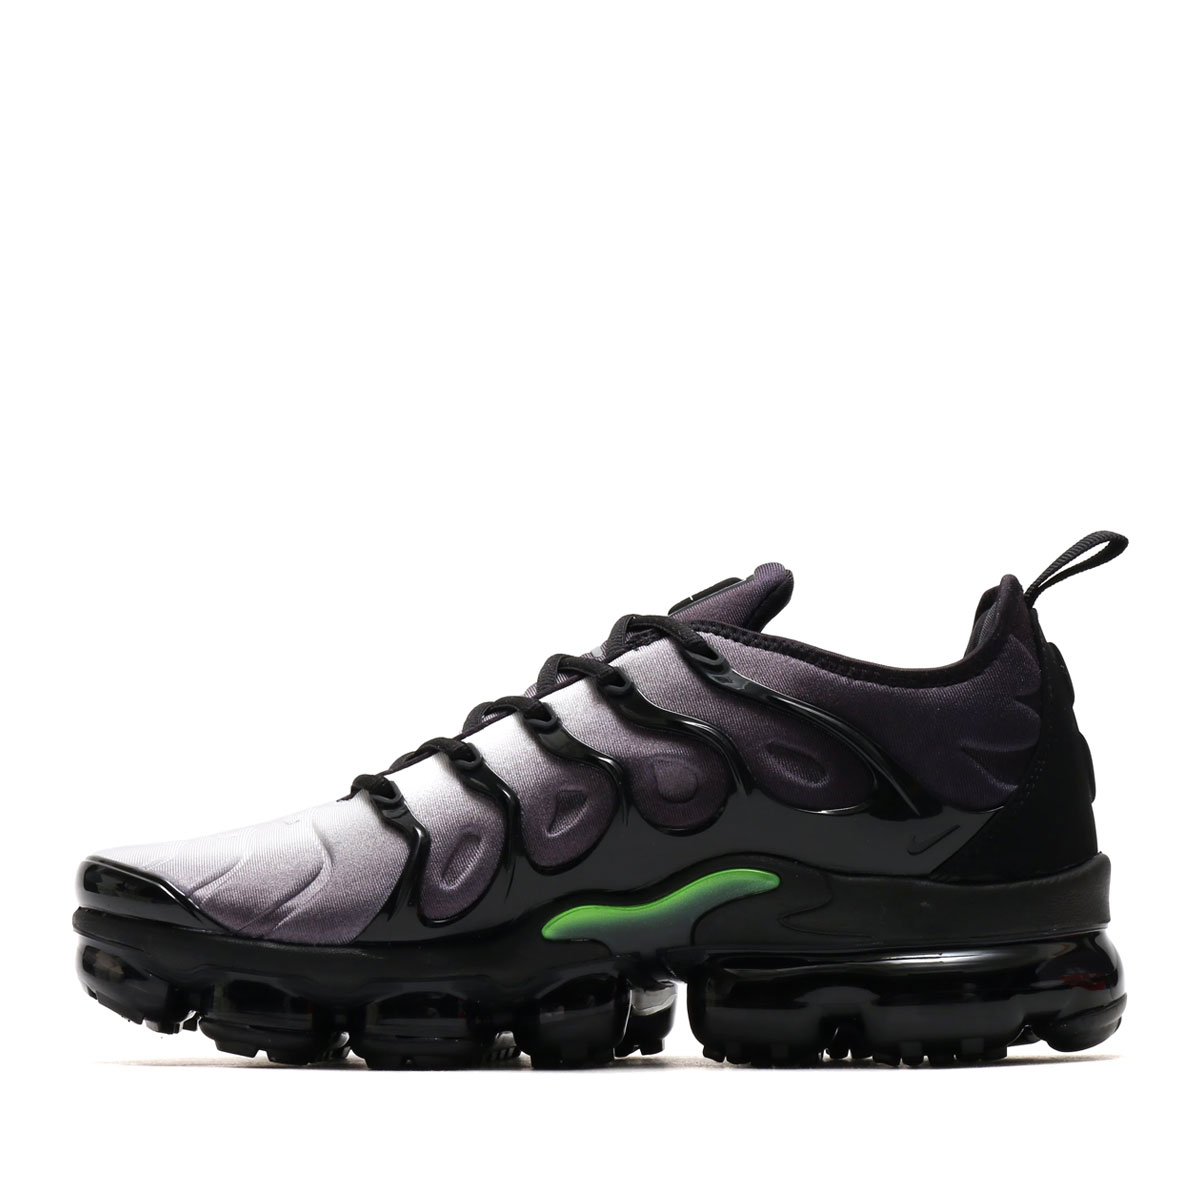 2659561c27ab7f NIKE AIR VAPORMAX PLUS (Nike air vapor max plus) (BLACK VOLT-WHITE) 18SU-S